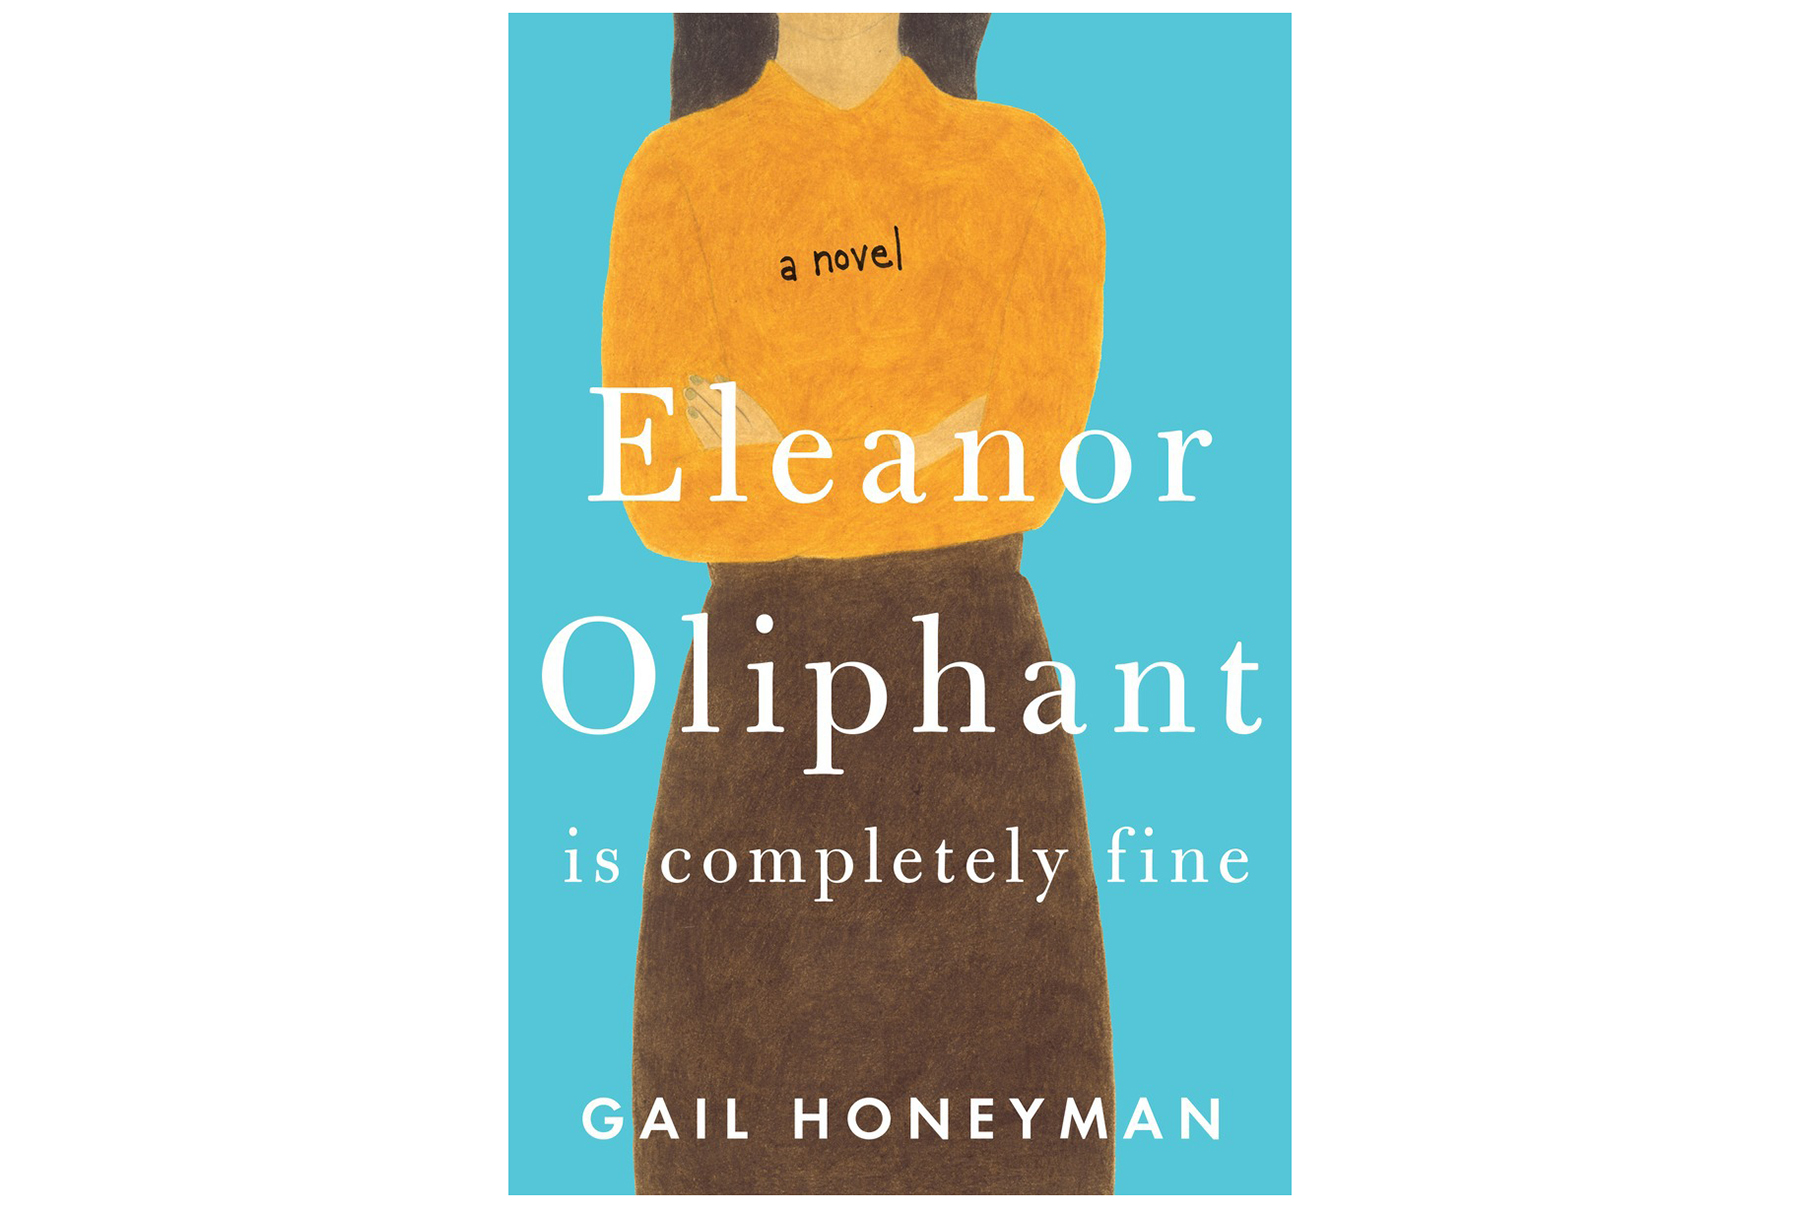 Eleanor Oliphant Is Completely Fine, by Gail Honeyman